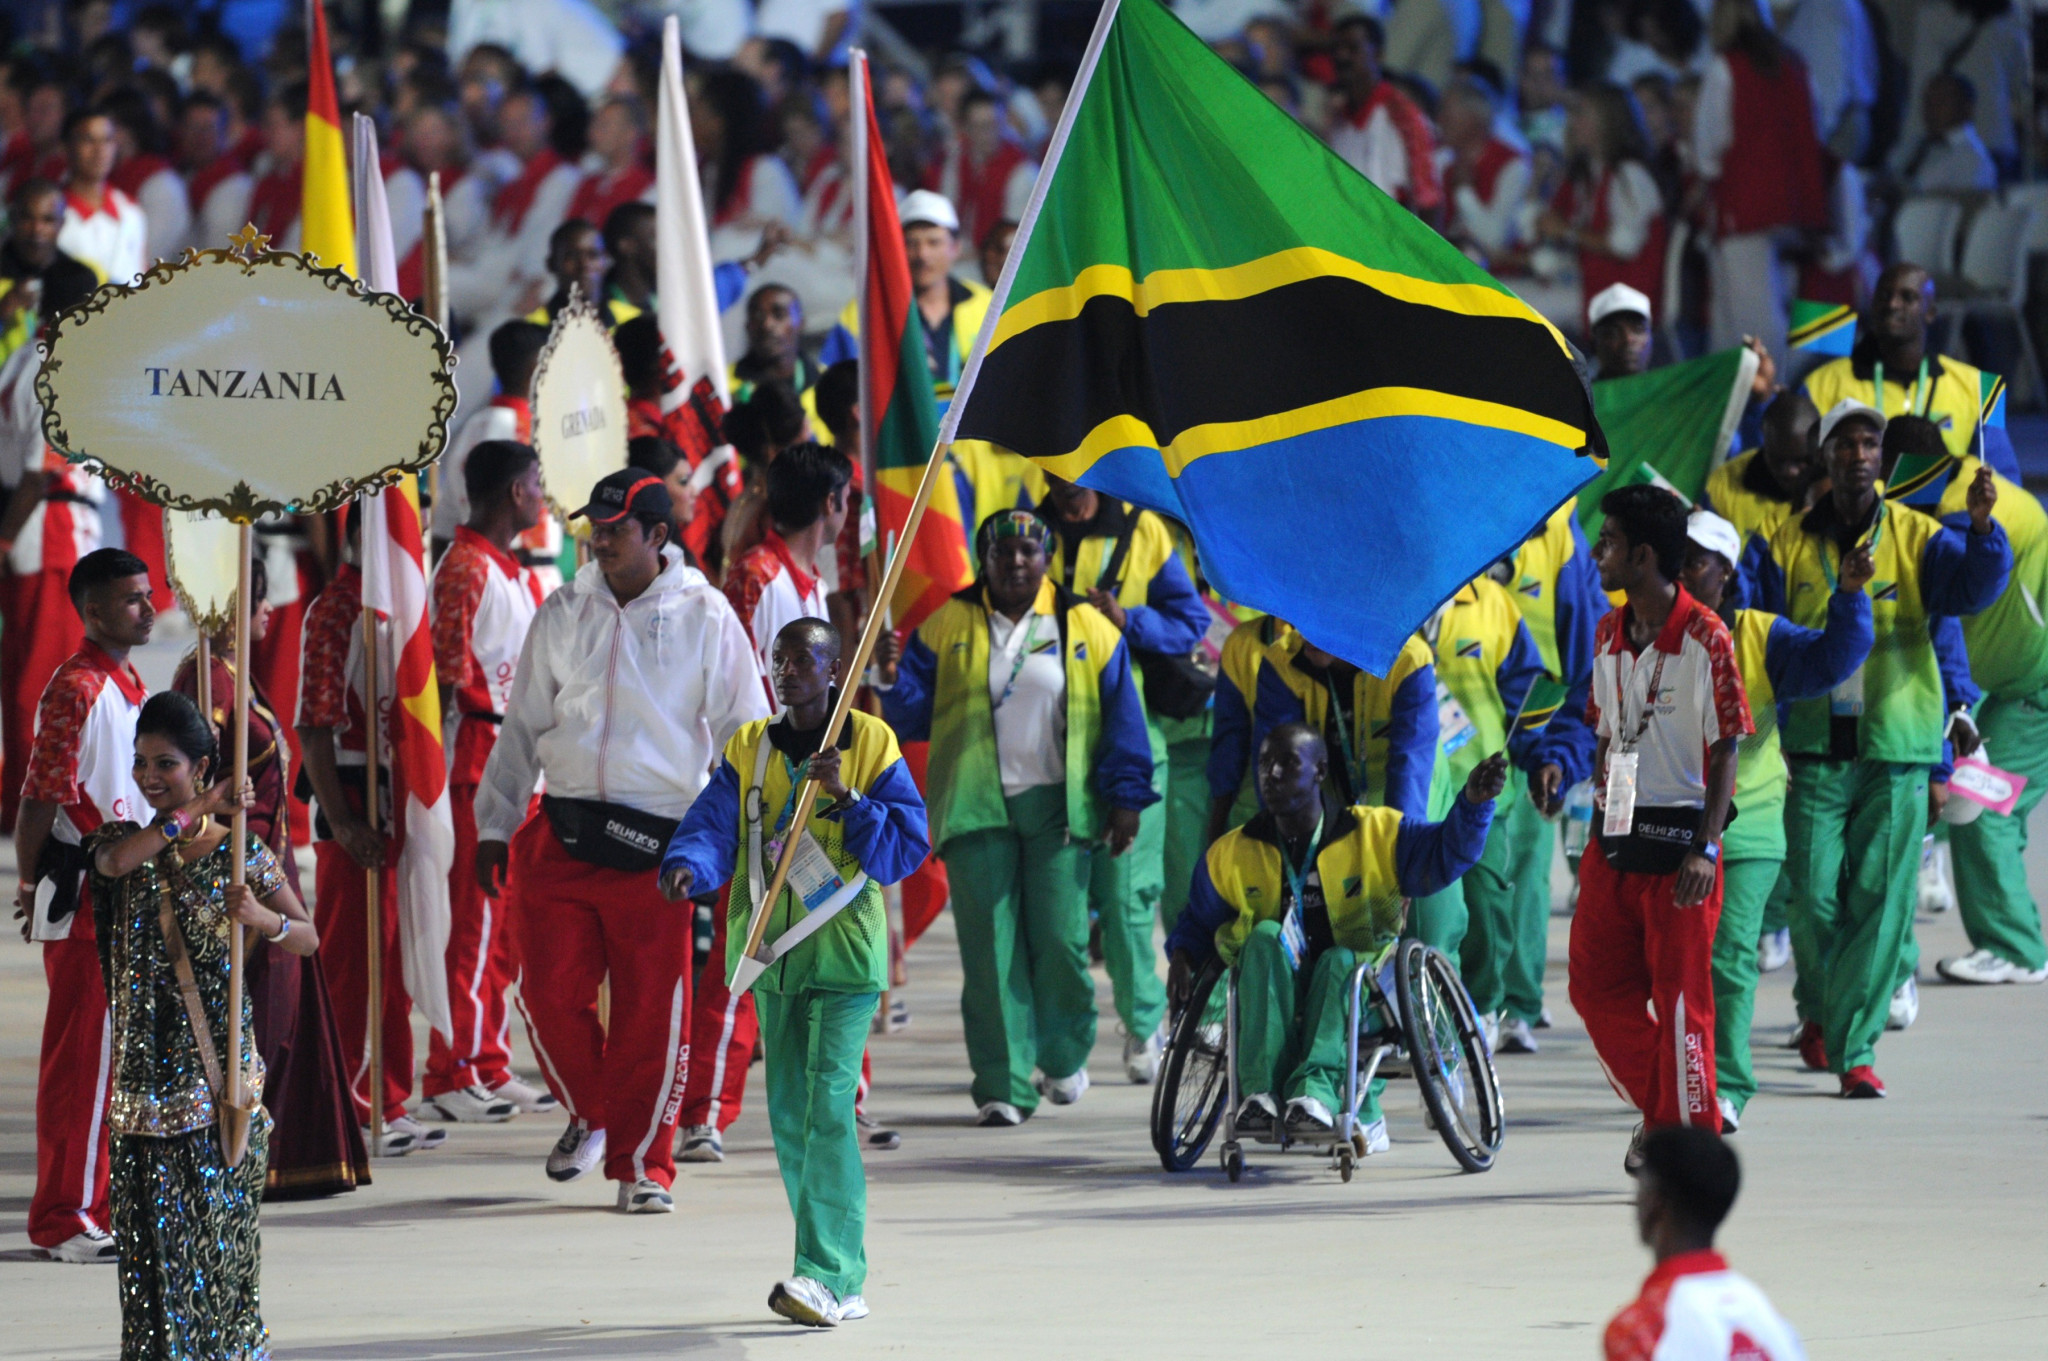 Tanzania is yet to win a medal at the Paralympics ©Getty Images